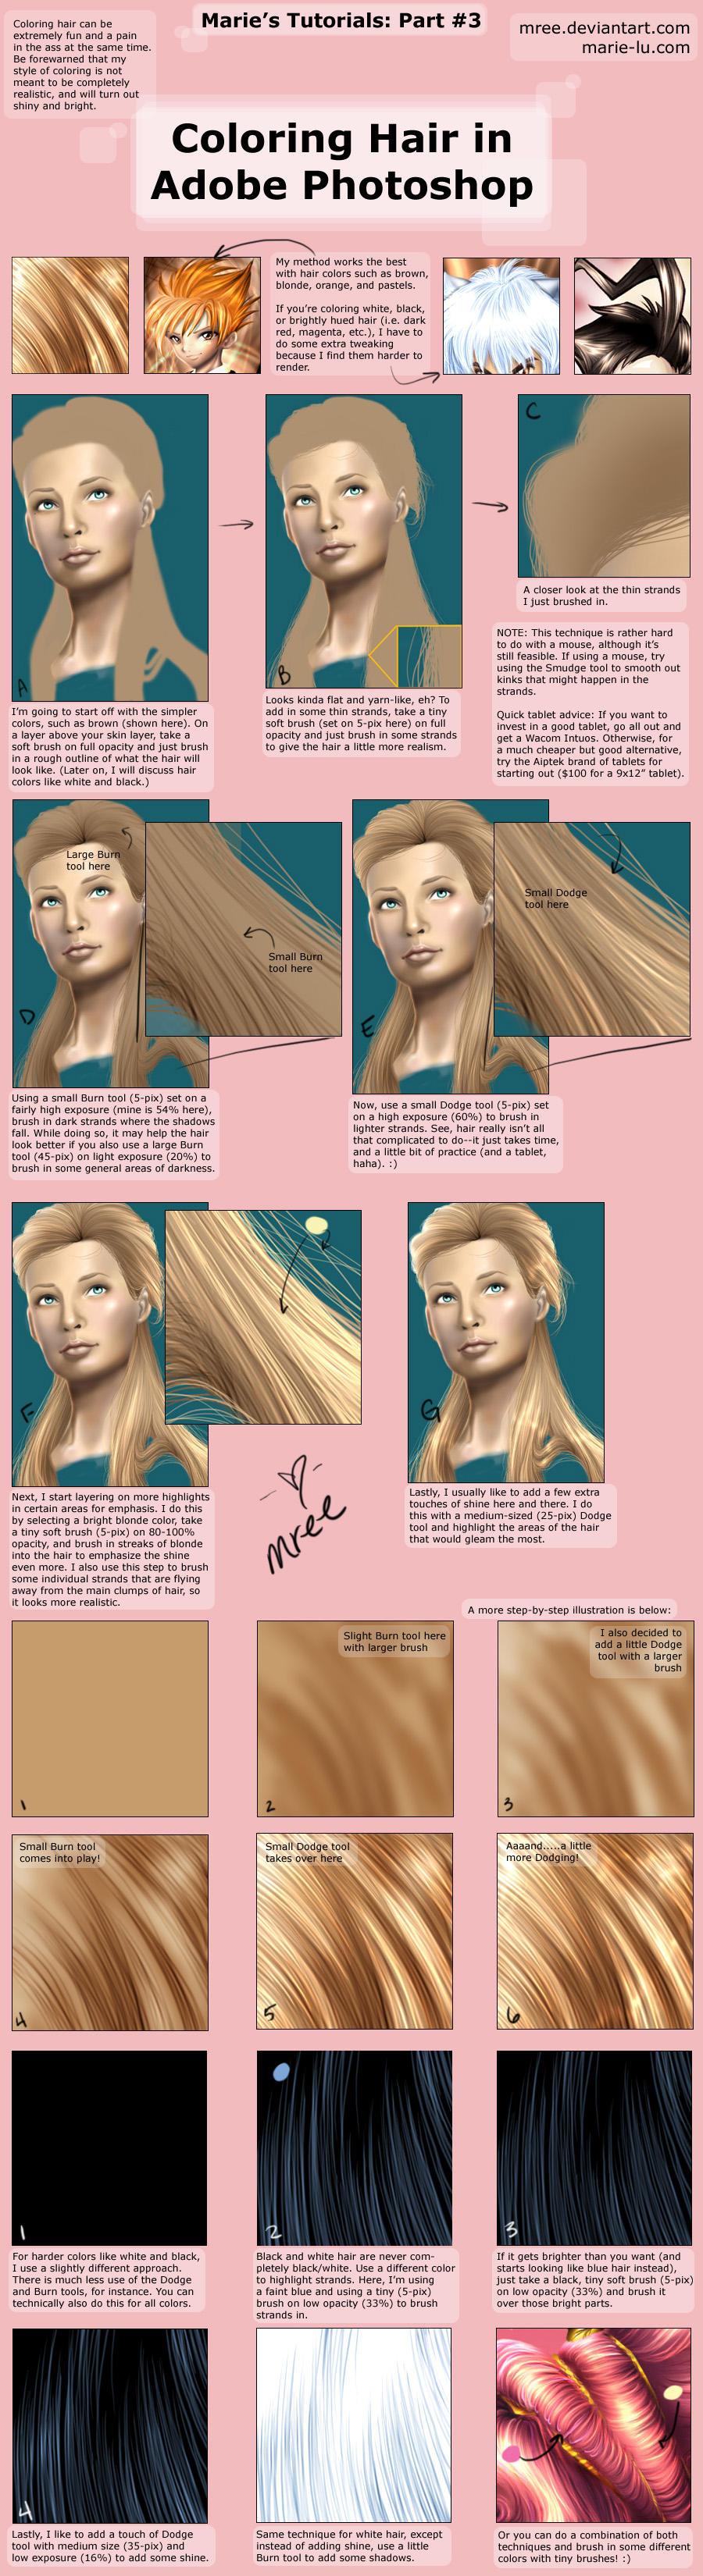 Coloring hair in photoshop by mree on deviantart coloring hair in photoshop by mree coloring hair in photoshop by mree baditri Choice Image